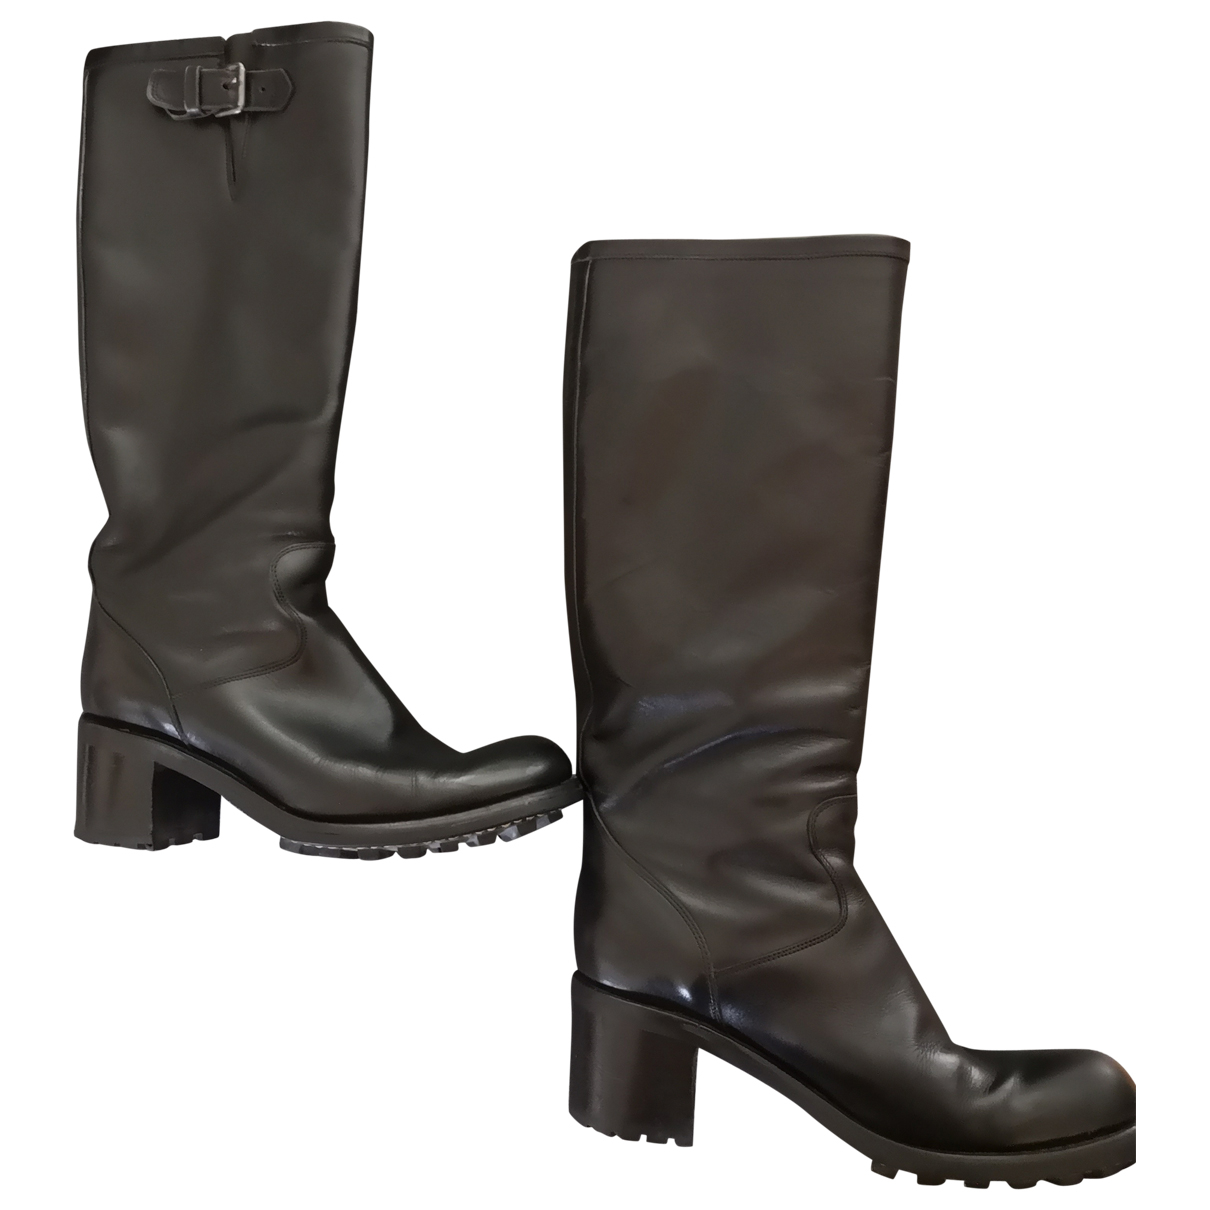 Free Lance N Black Leather Boots for Women 38.5 EU